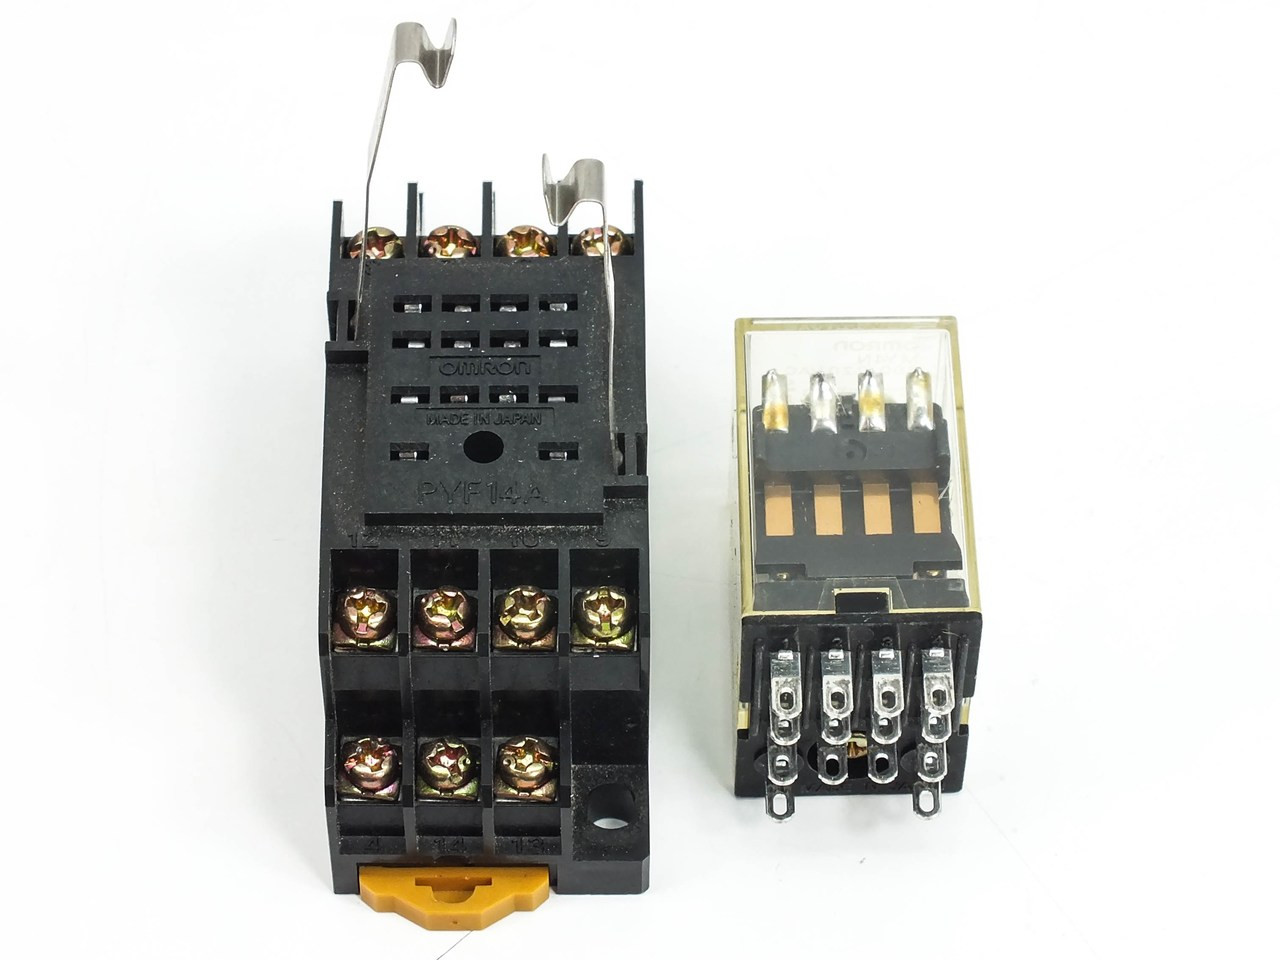 Omron My4n Power Relay With Pyf14a 2 Pole Relay Din Mount